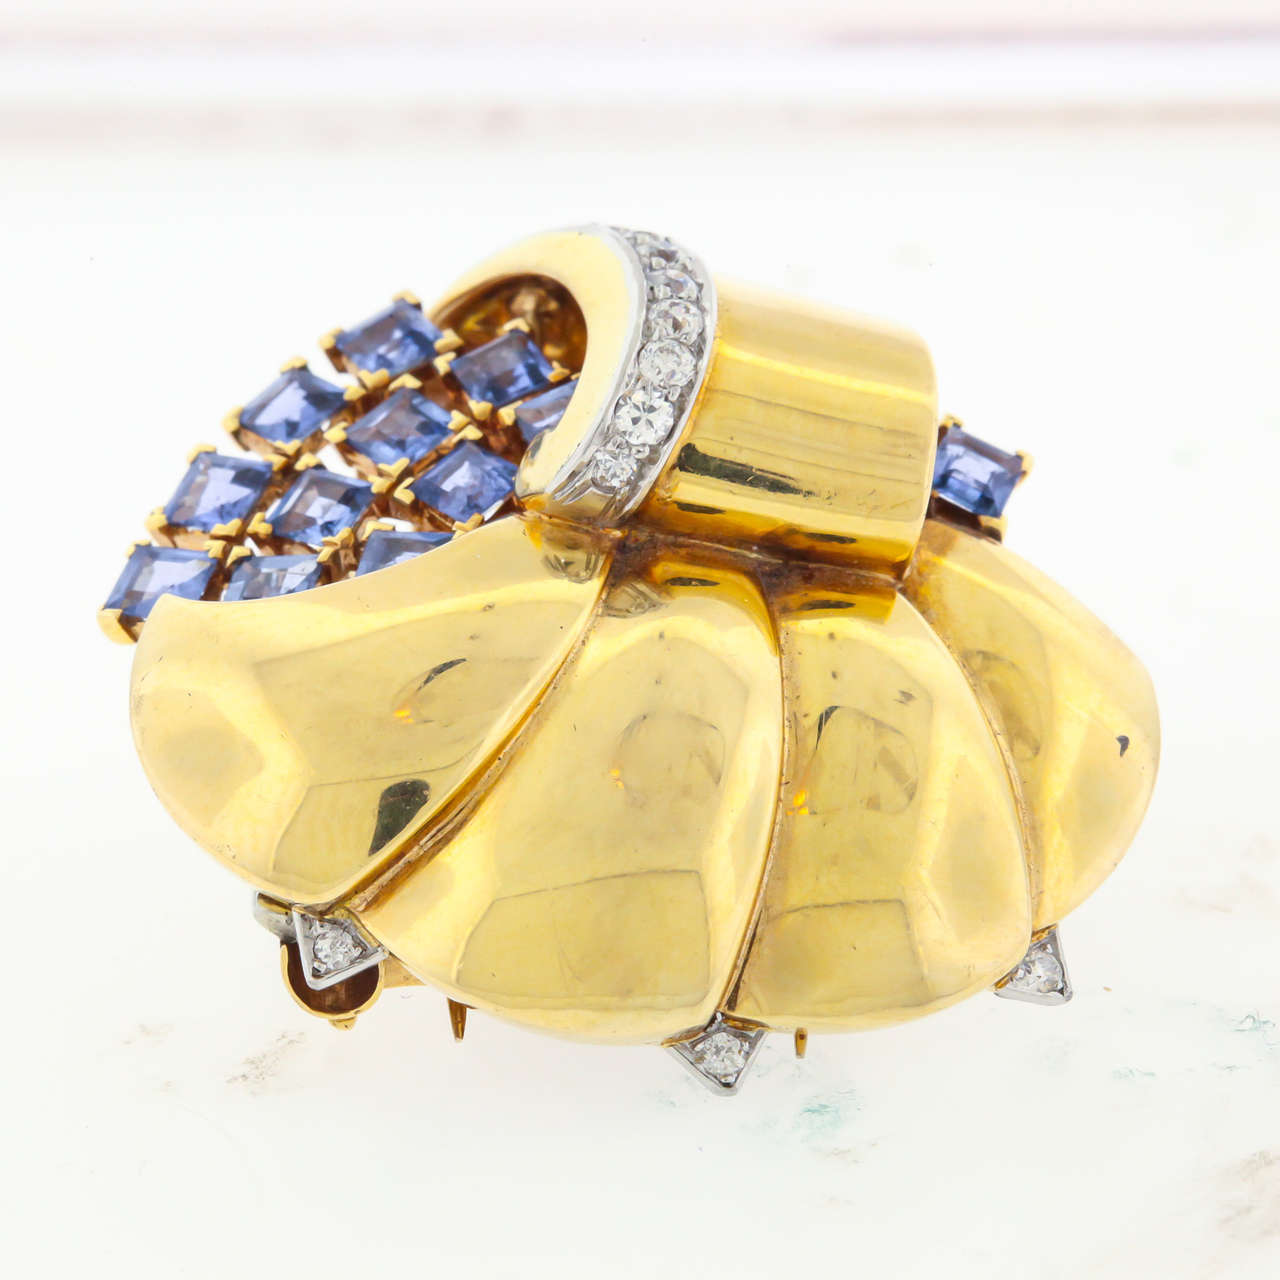 Circa 1940's 'Reflection'  pin in 14K gold, sapphire and diamonds, signed Trabert Hoeffer Mauboussin, the famed American jeweler from 1929 through 1953. The very Retro-style scalloped brooch, 1-7/8